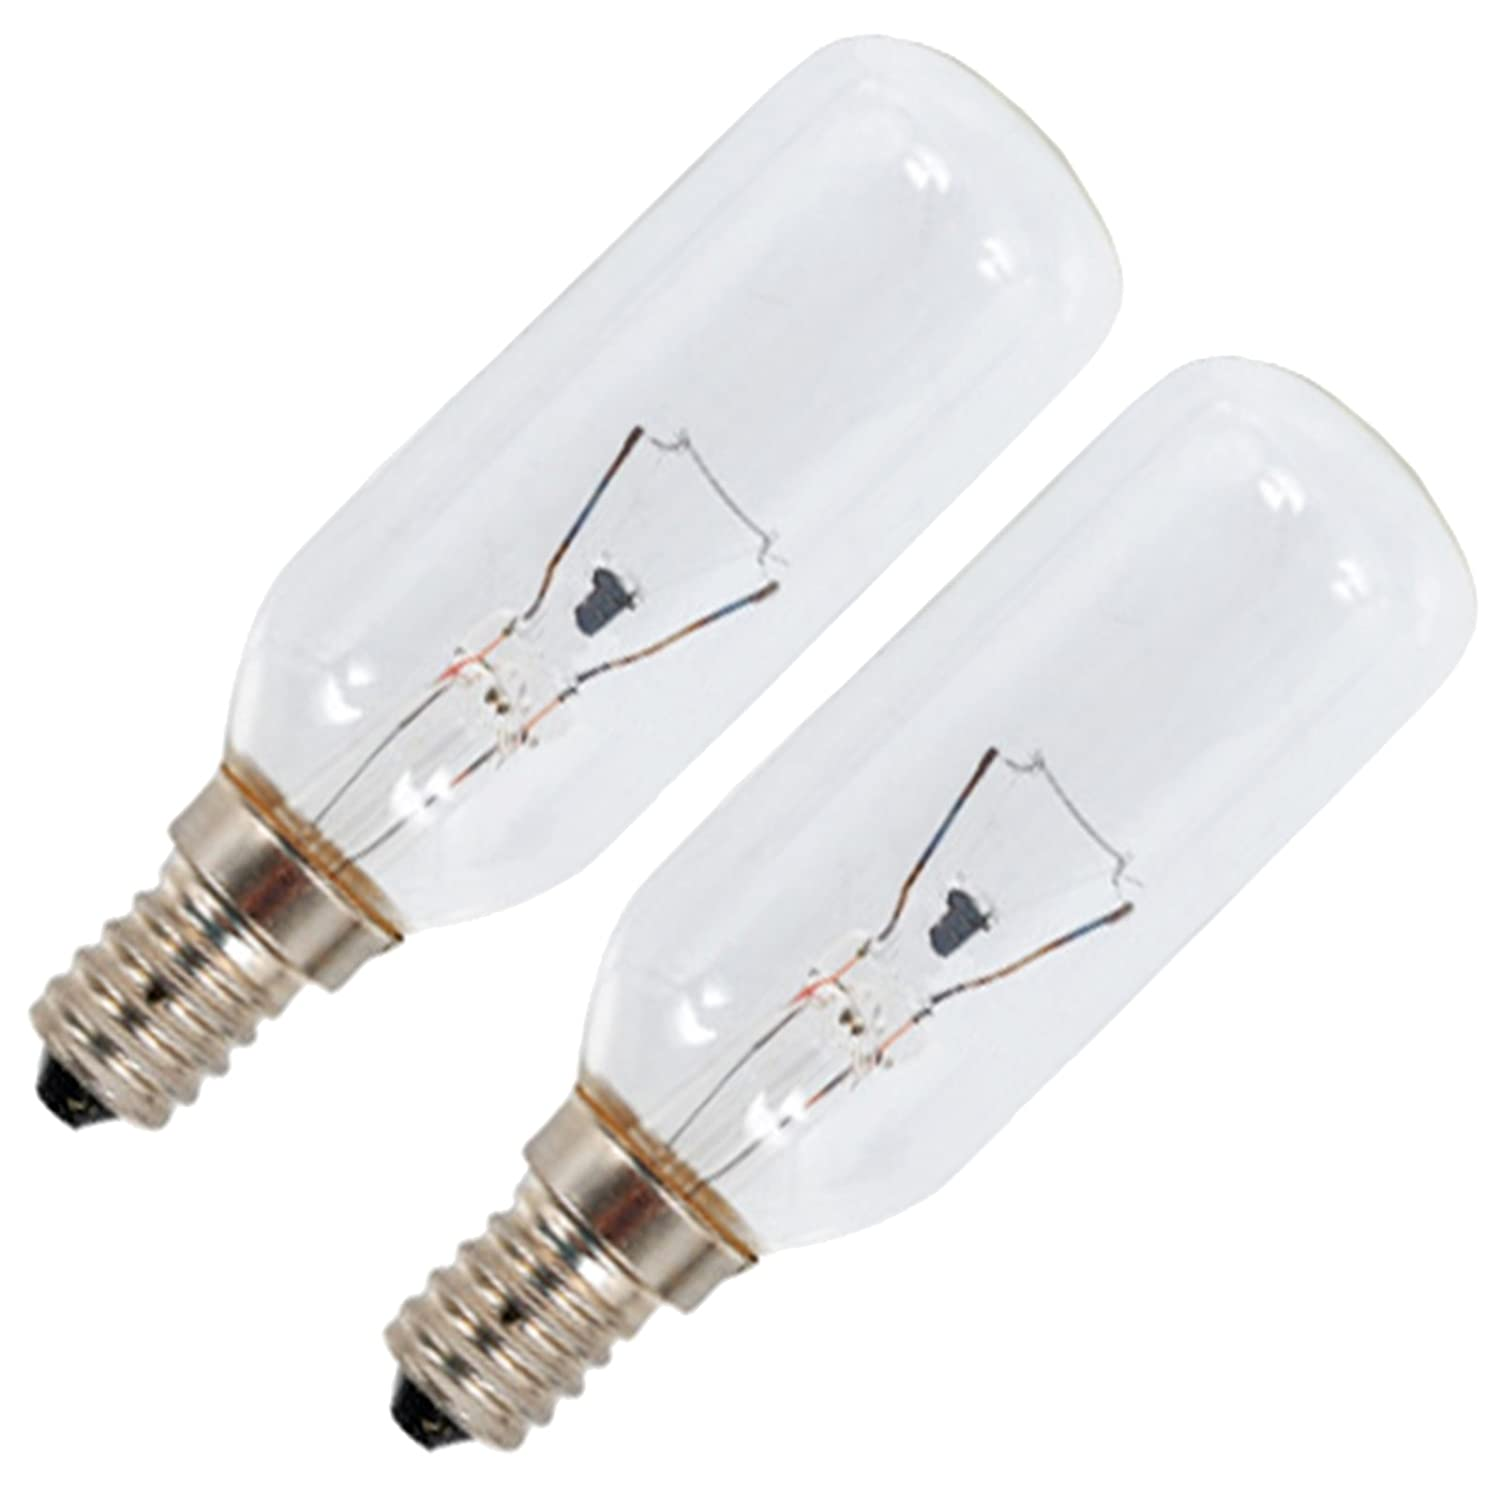 SPARES2GO E14 SES Long 40W Lamp Light Bulbs for Currys Essentials Oven Cooker Hood/Vent Extractor (Pack of 2)